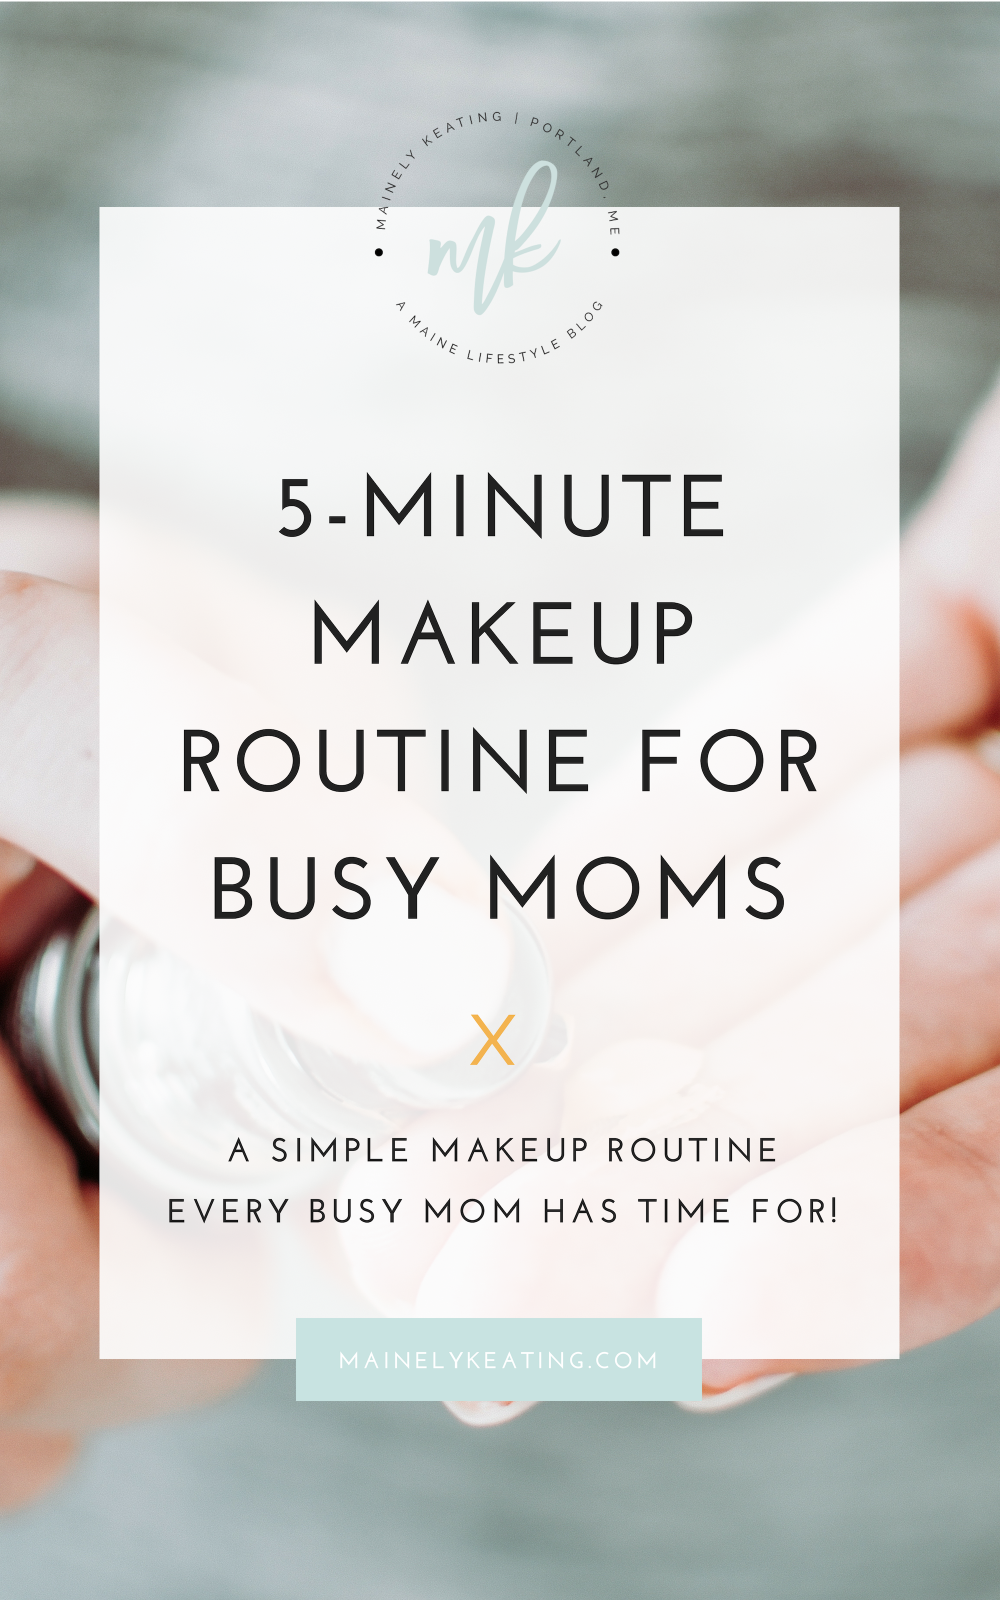 5 Minute Makeup Routine For Busy Moms - As a busy mom, it's just not